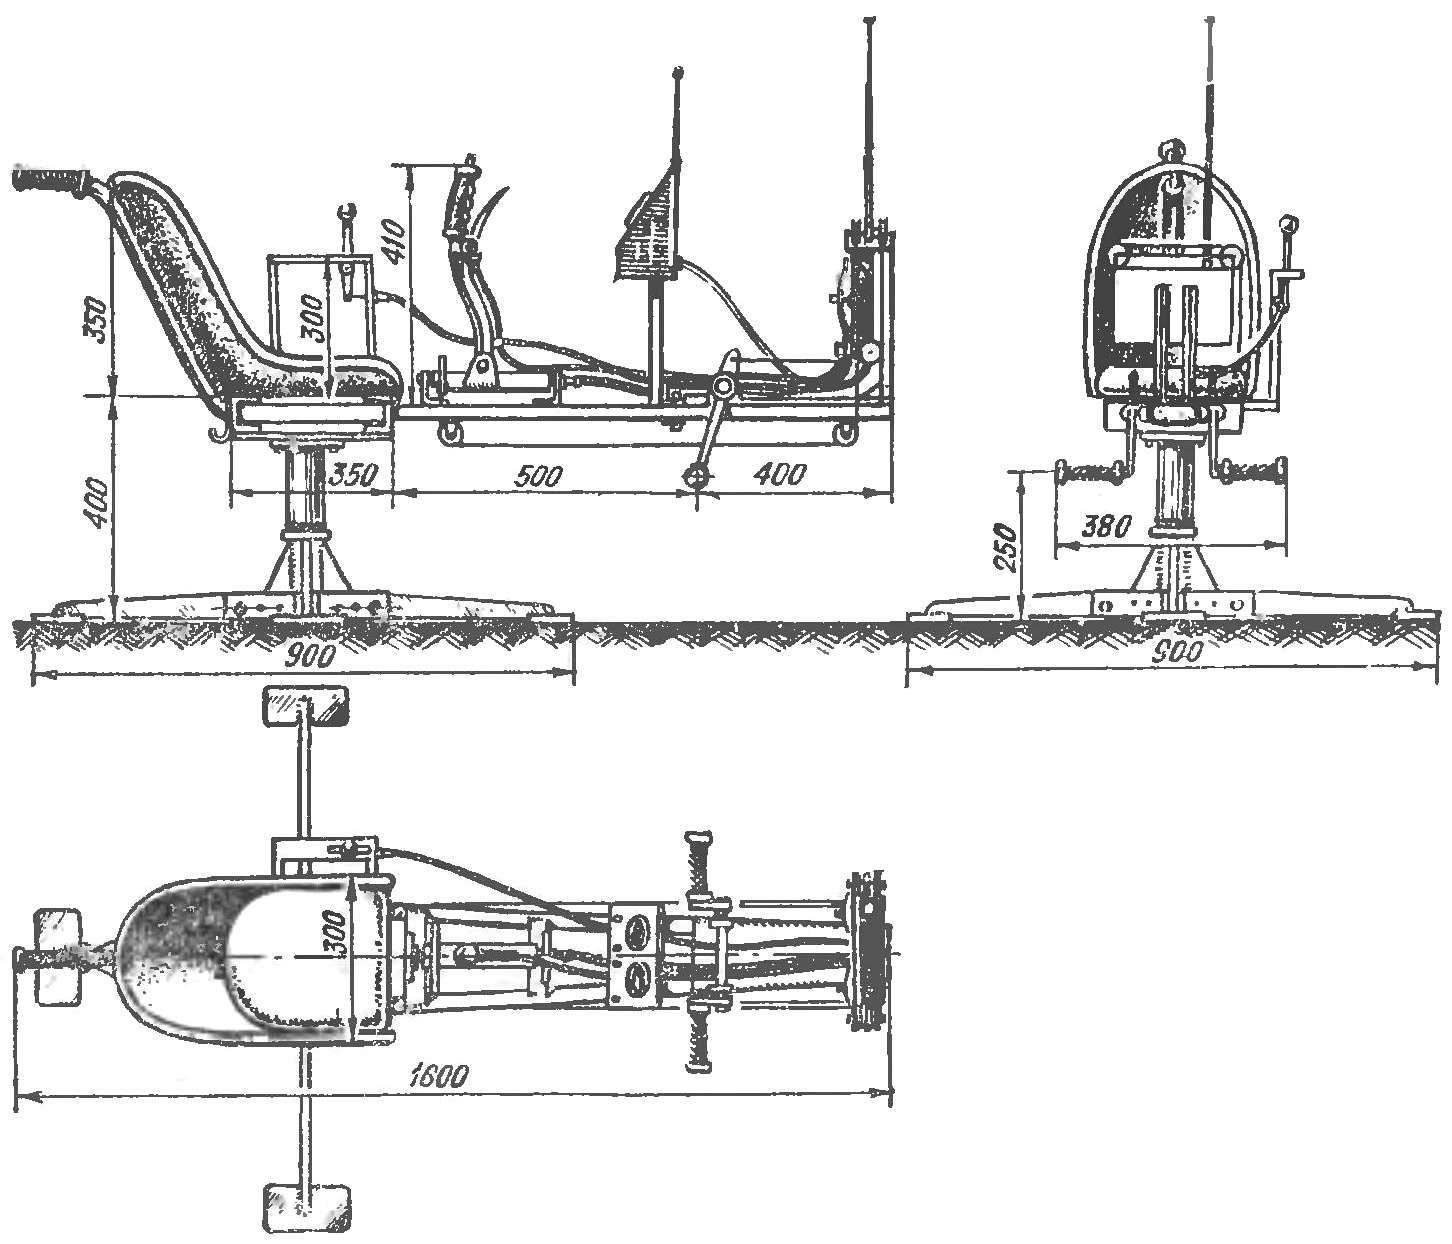 Fig. 2. Overall layout of the chair.